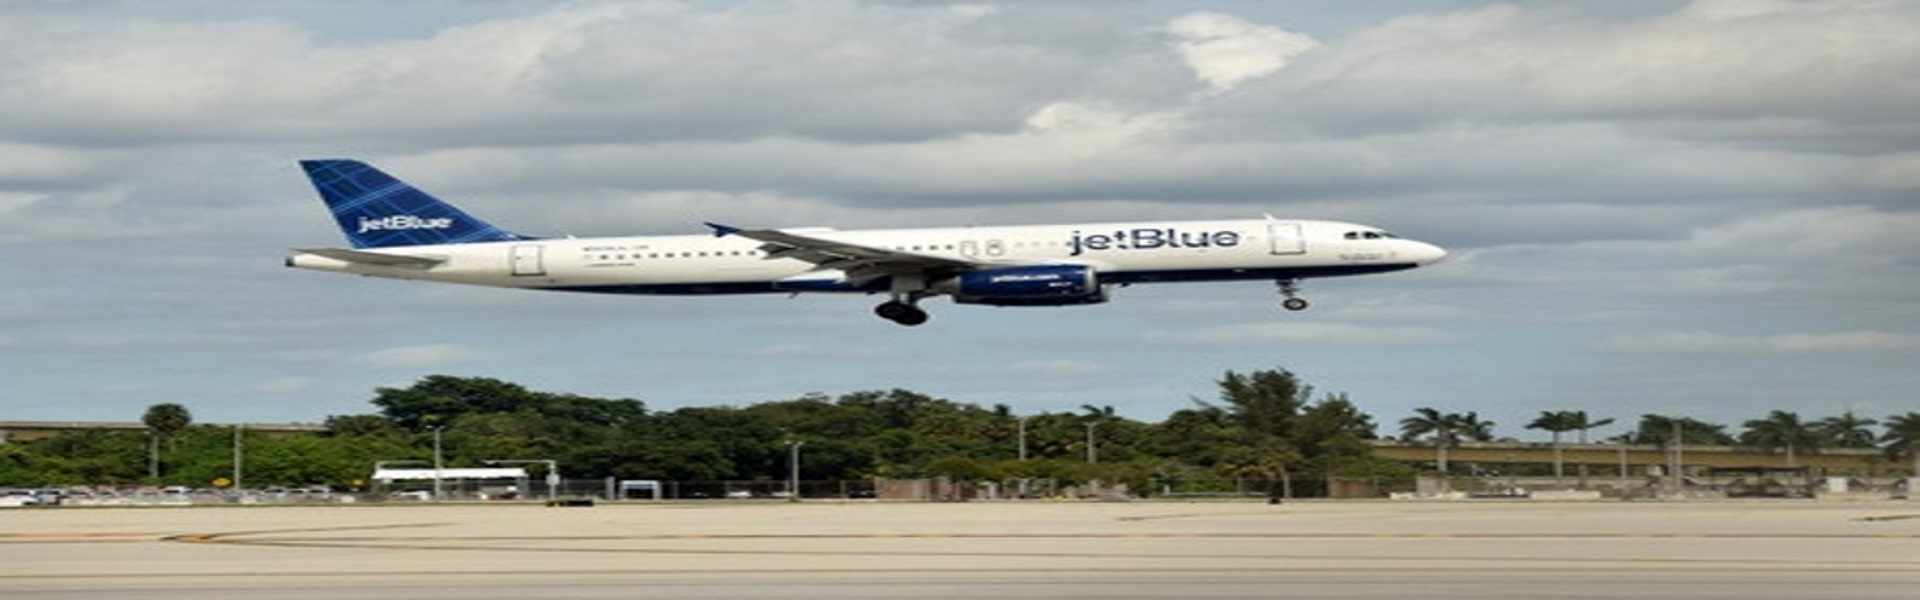 Jet Blue Jobs - Job Application Information